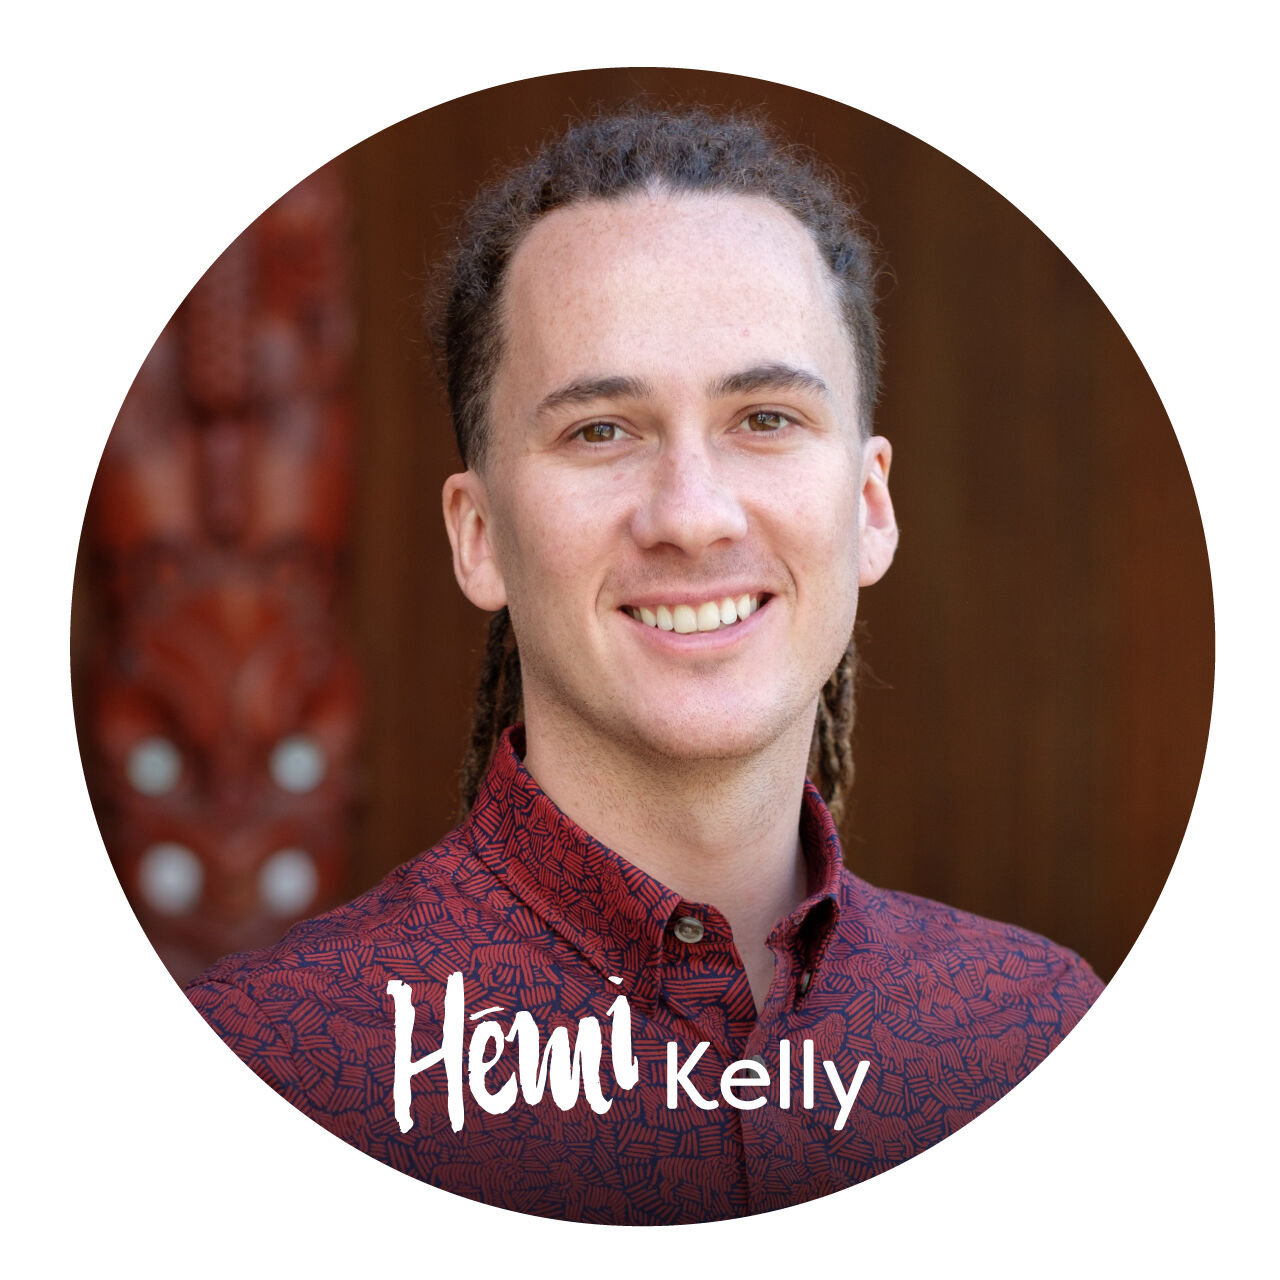 A picture of Hēmi Kelly